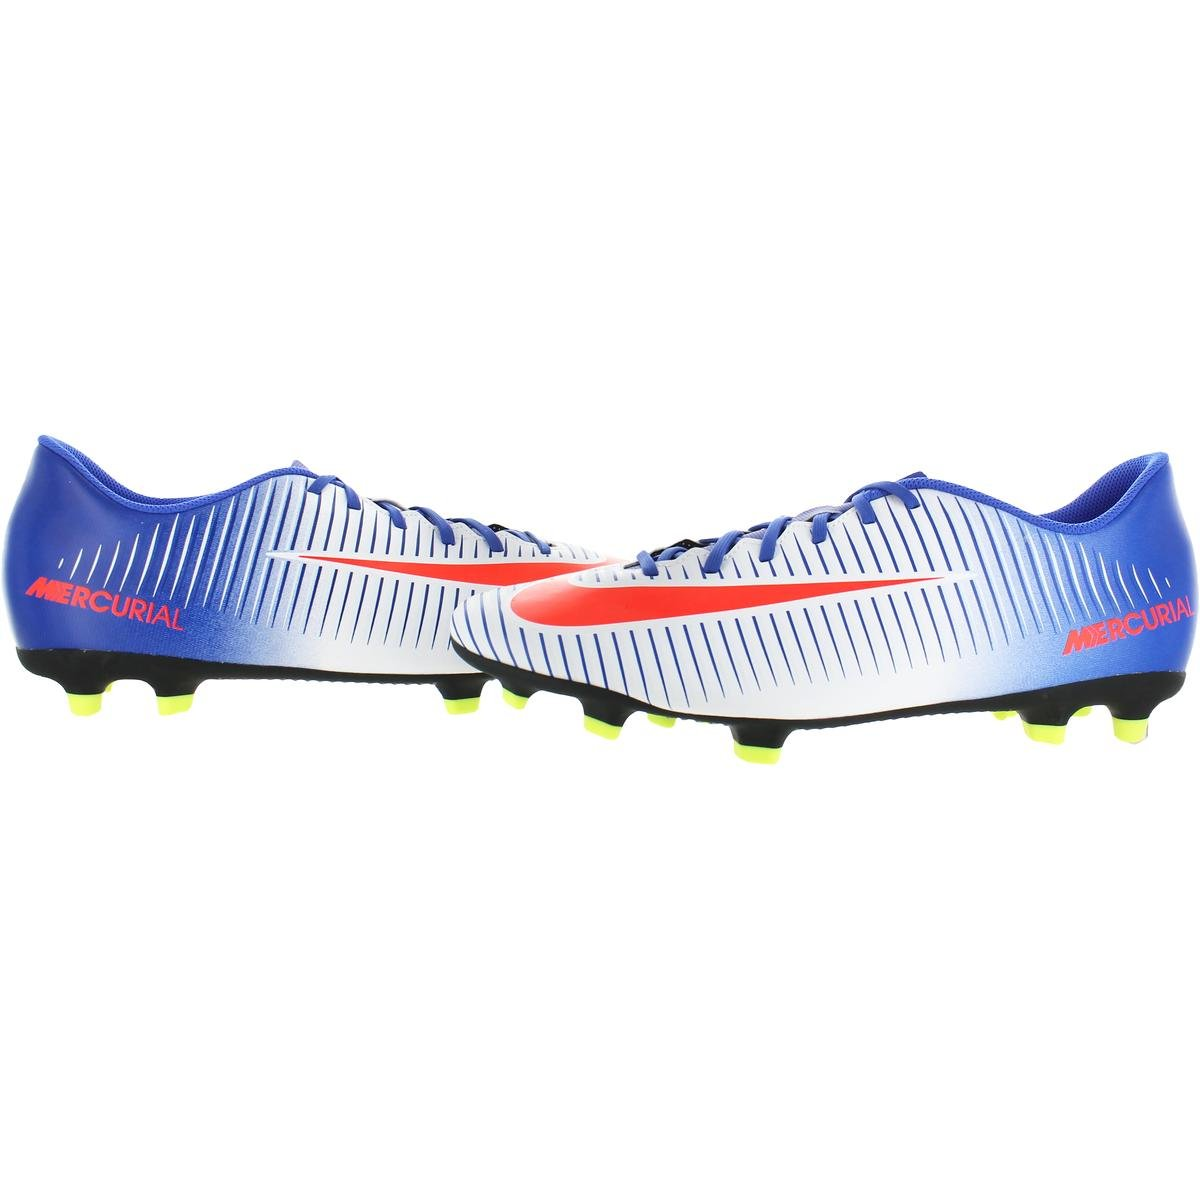 differently 0b243 2132c Amazon.com   Nike Womens Mercurial Vortex 3 FG Soccer Striped Cleats White  13 Medium (B, M)   Soccer